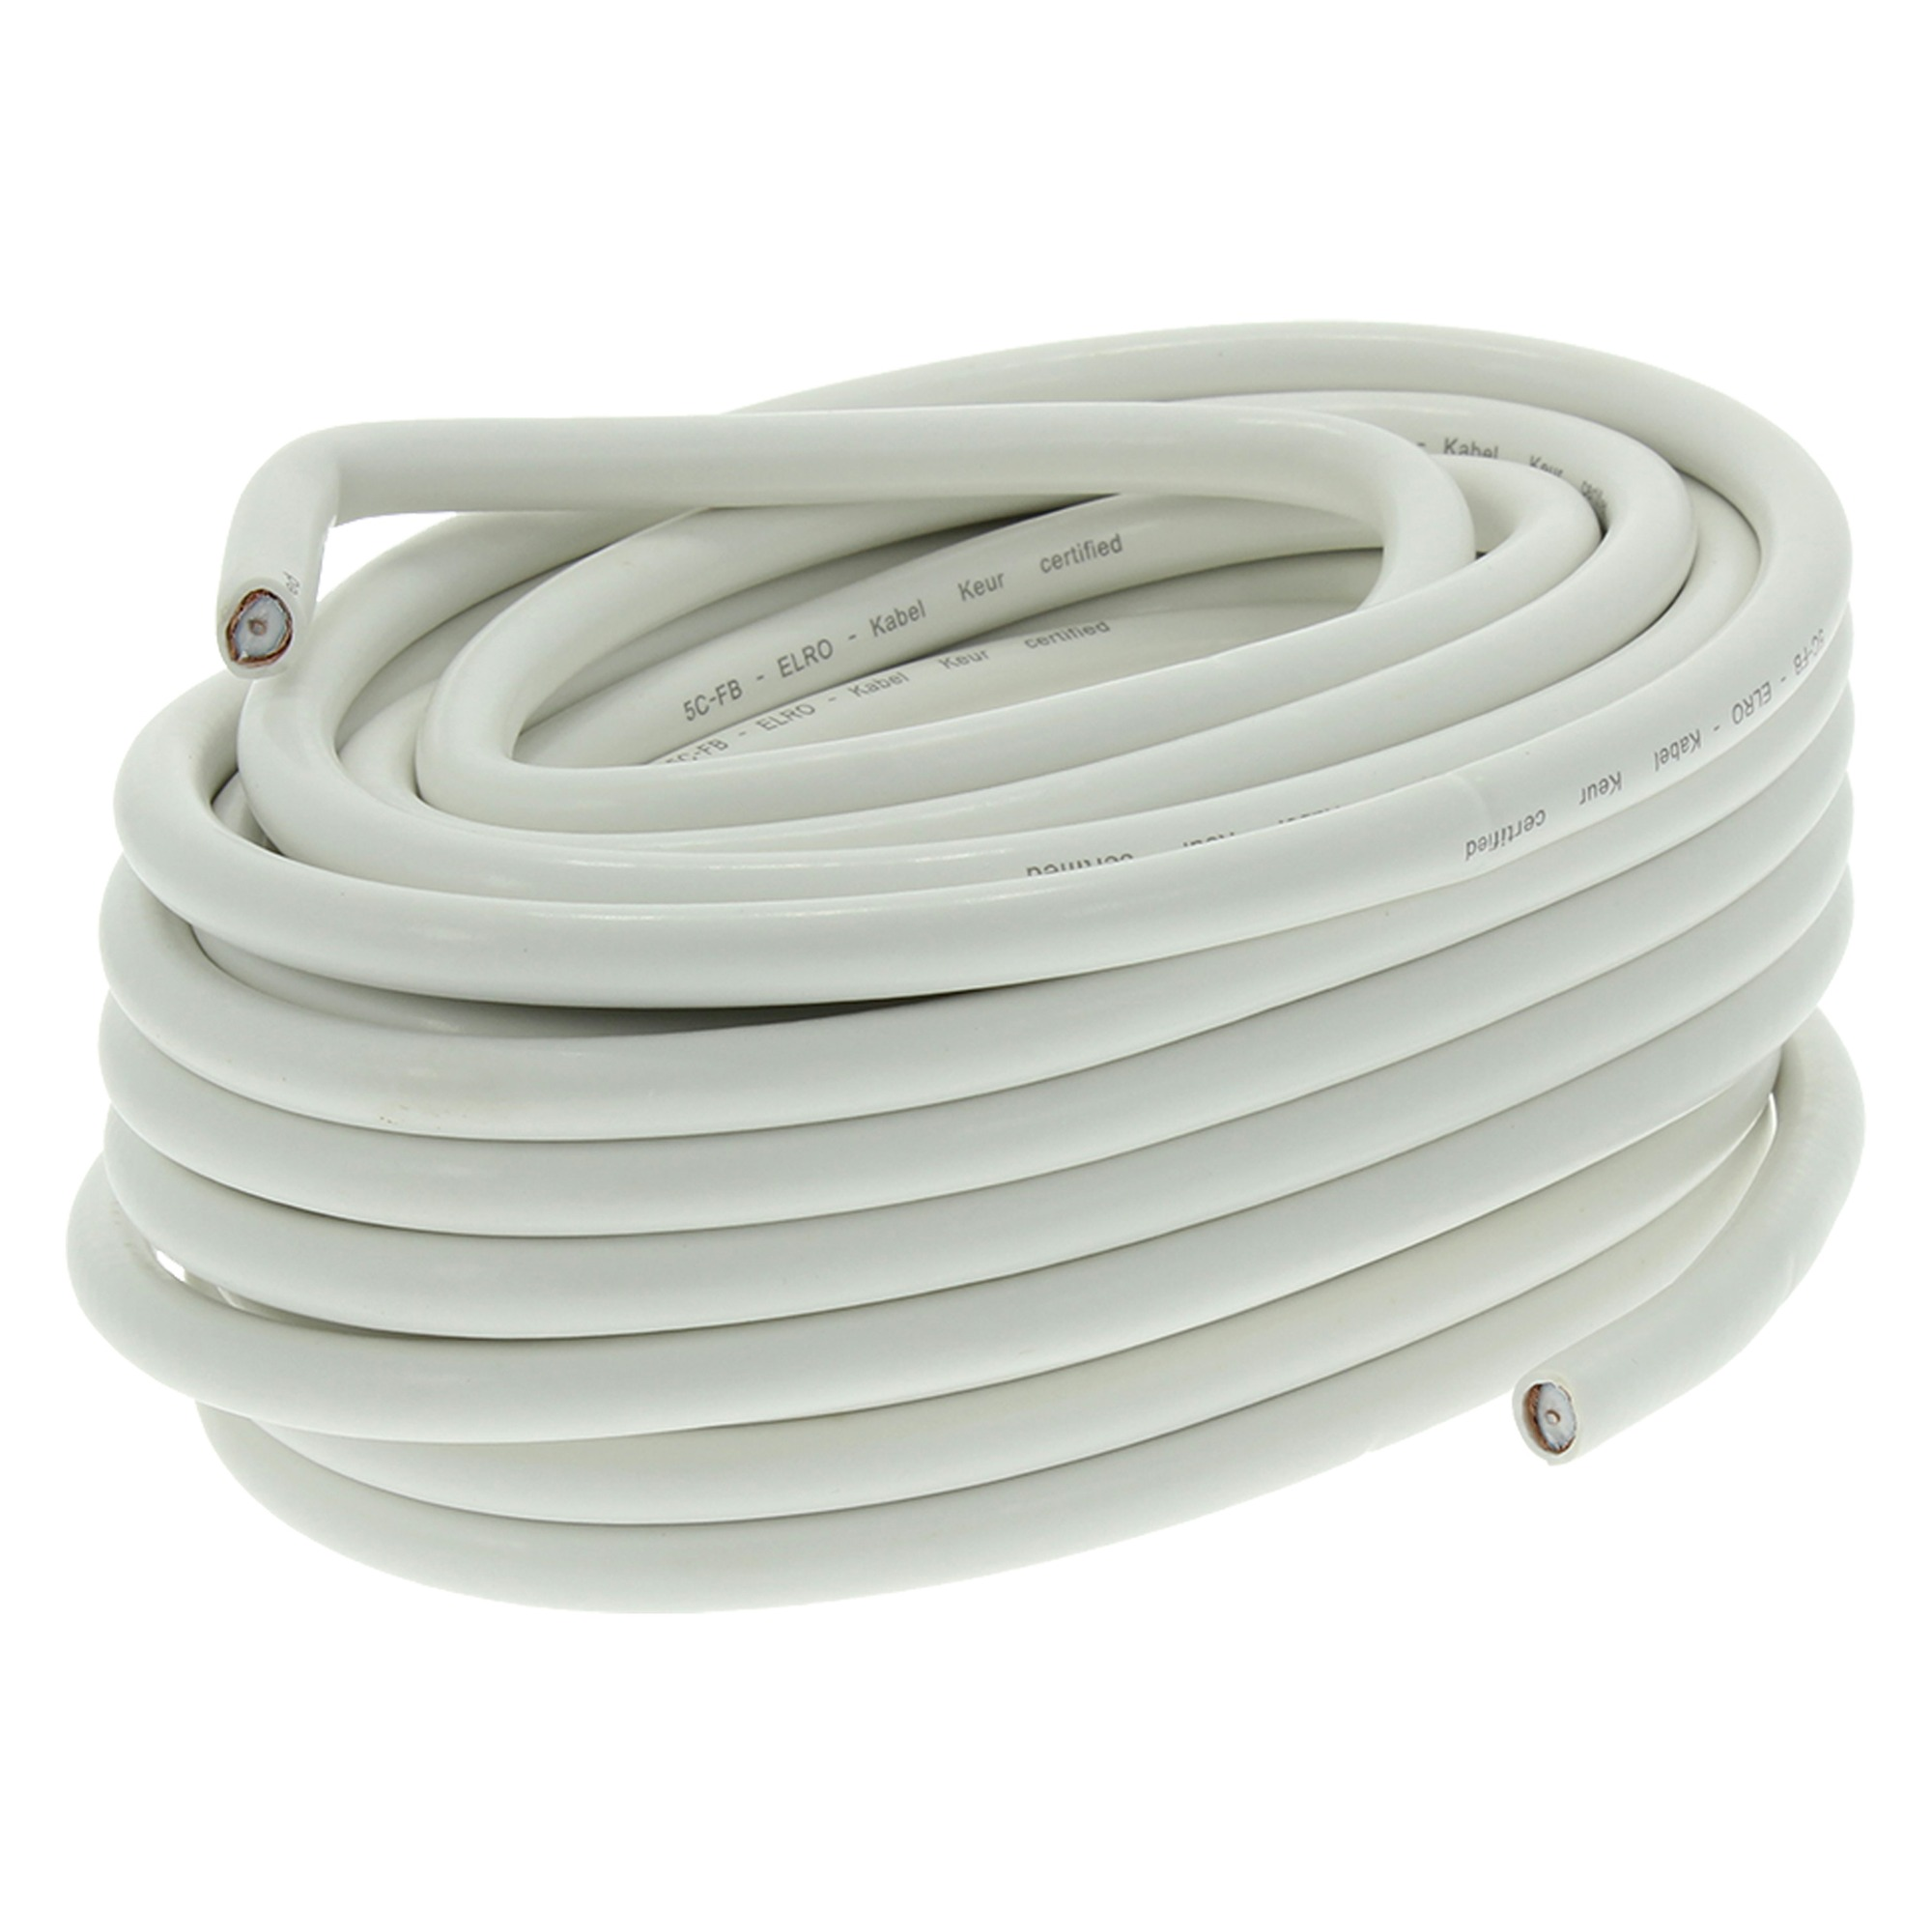 Q-link COAX-kabel HQ 7mm wit 10m